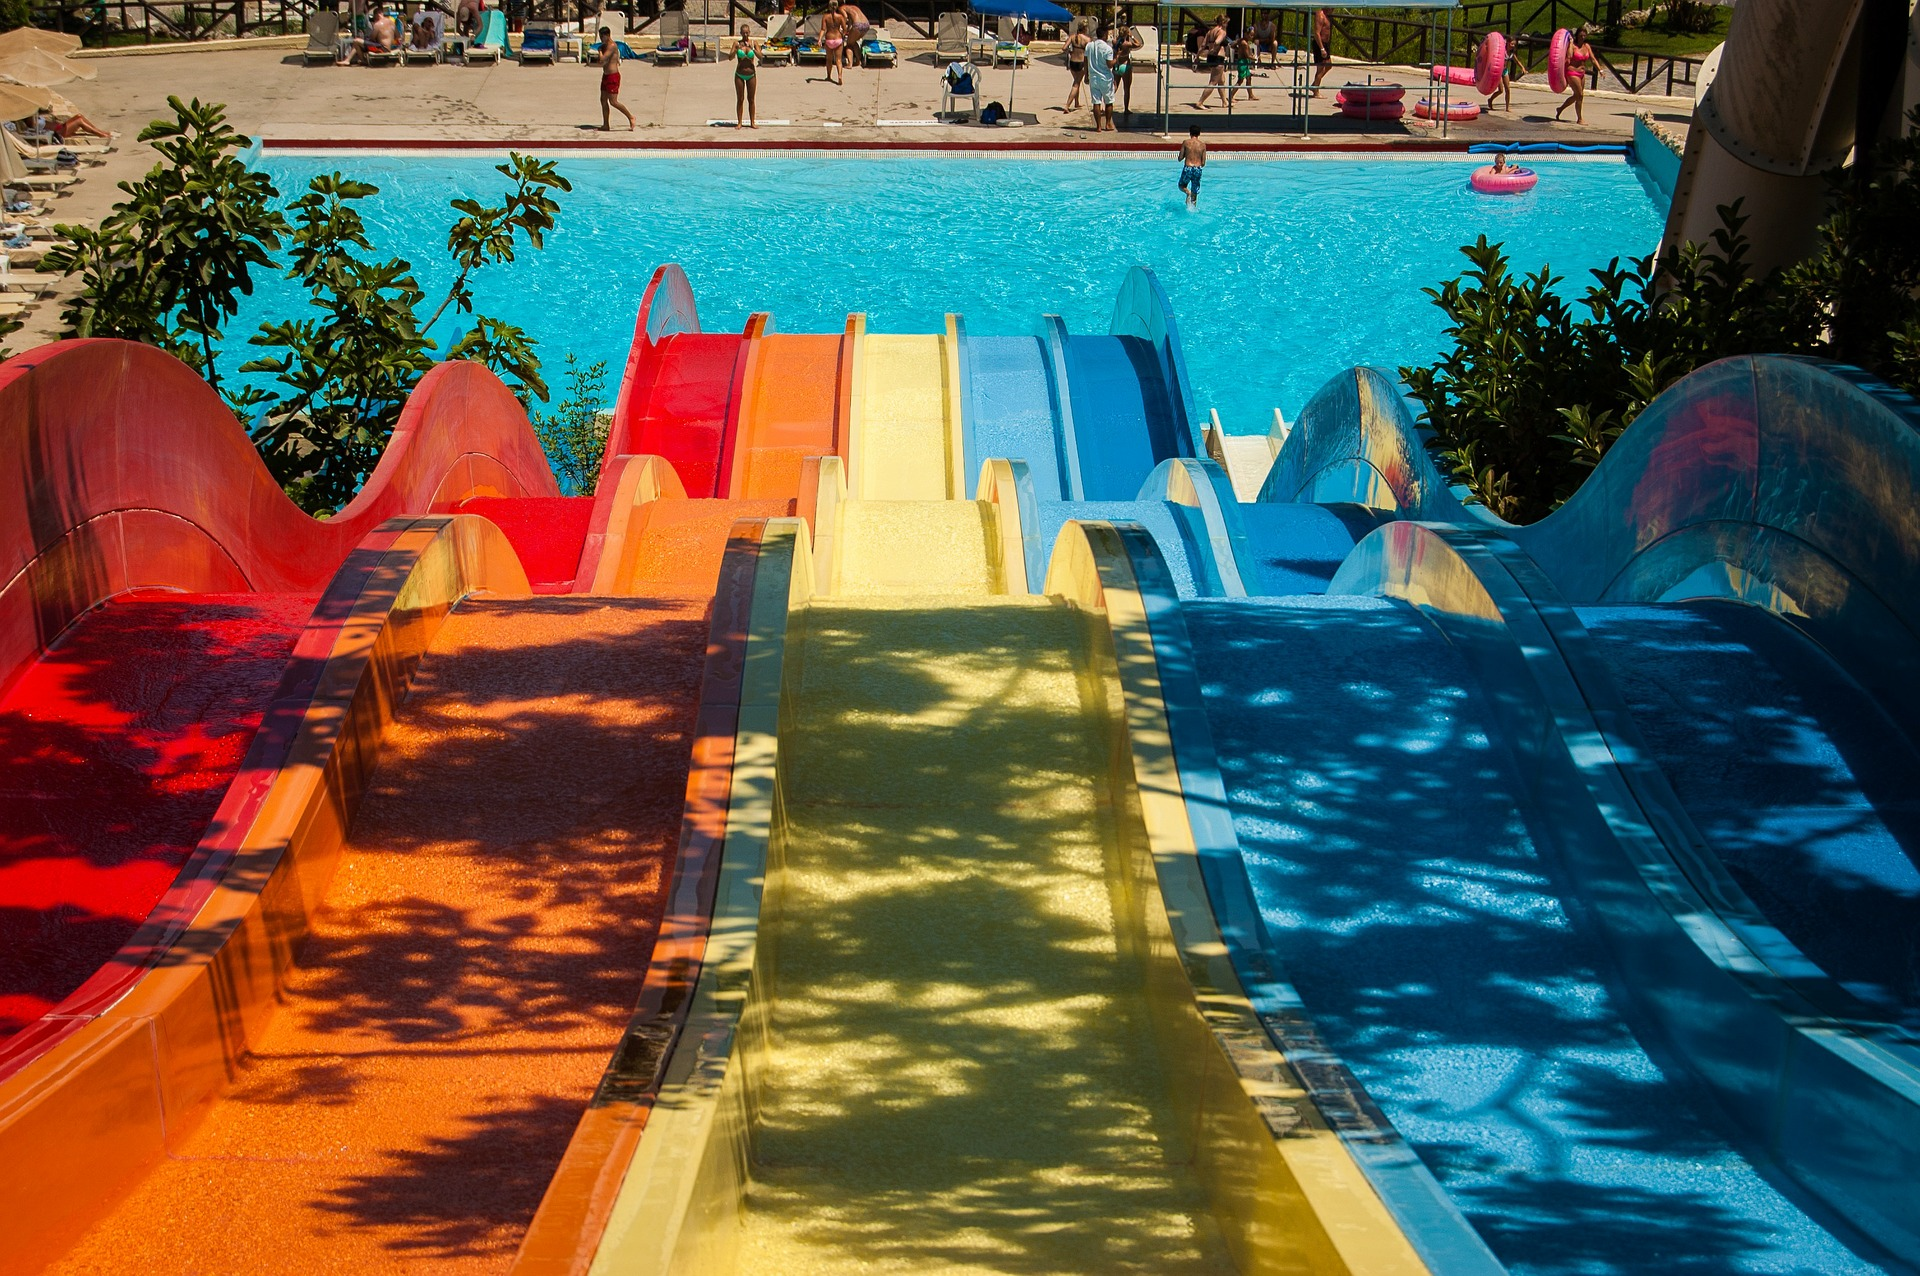 Ice Land Water Park Dubai: Your One-Stop Guide